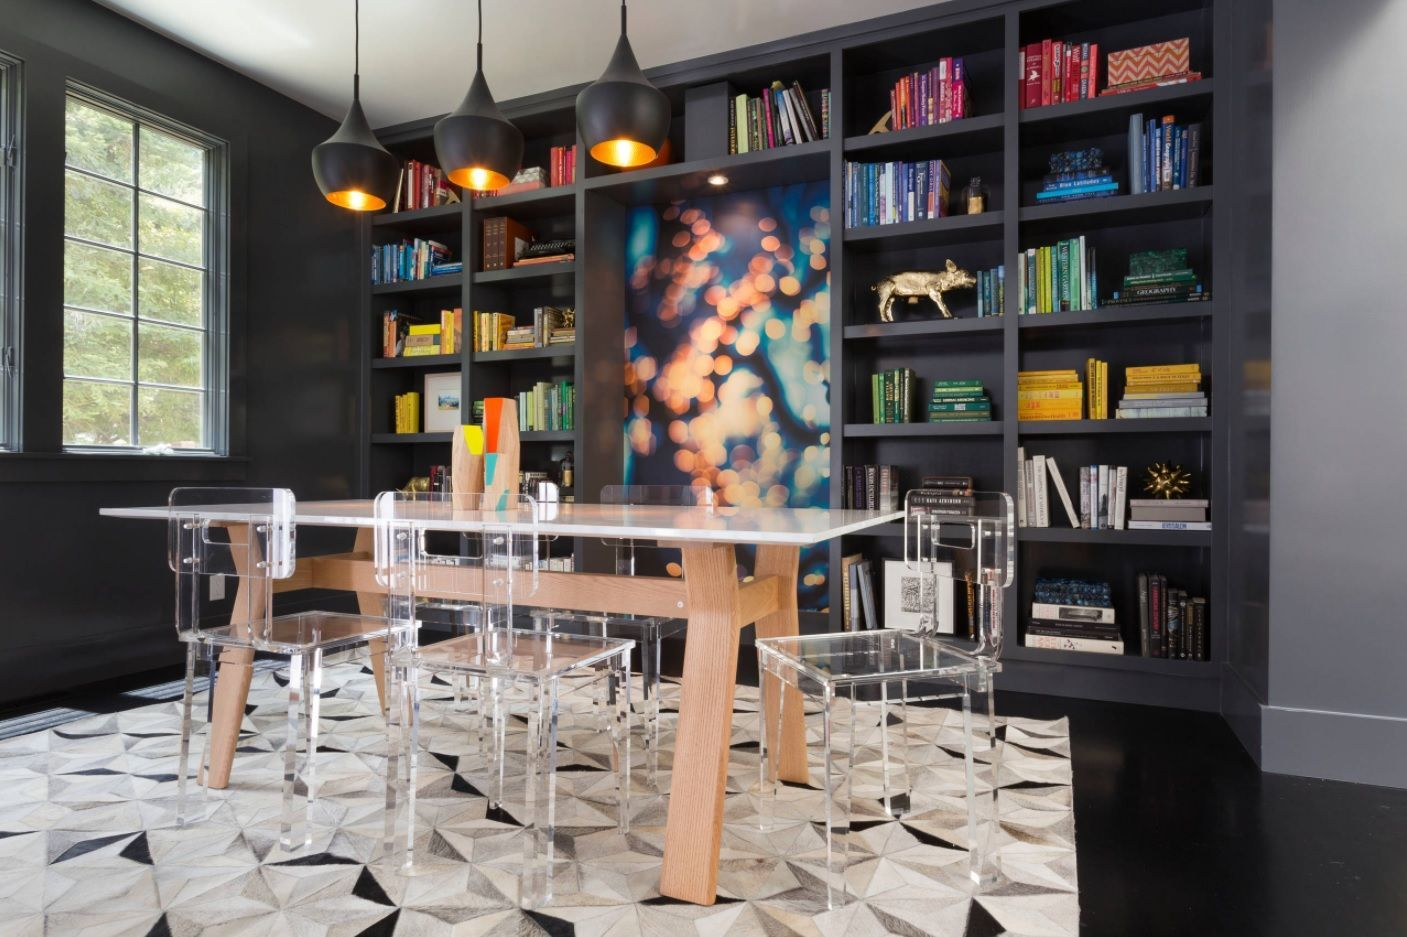 Unusual designer's solution to put dining zone into the fusion decorated library in dark tones